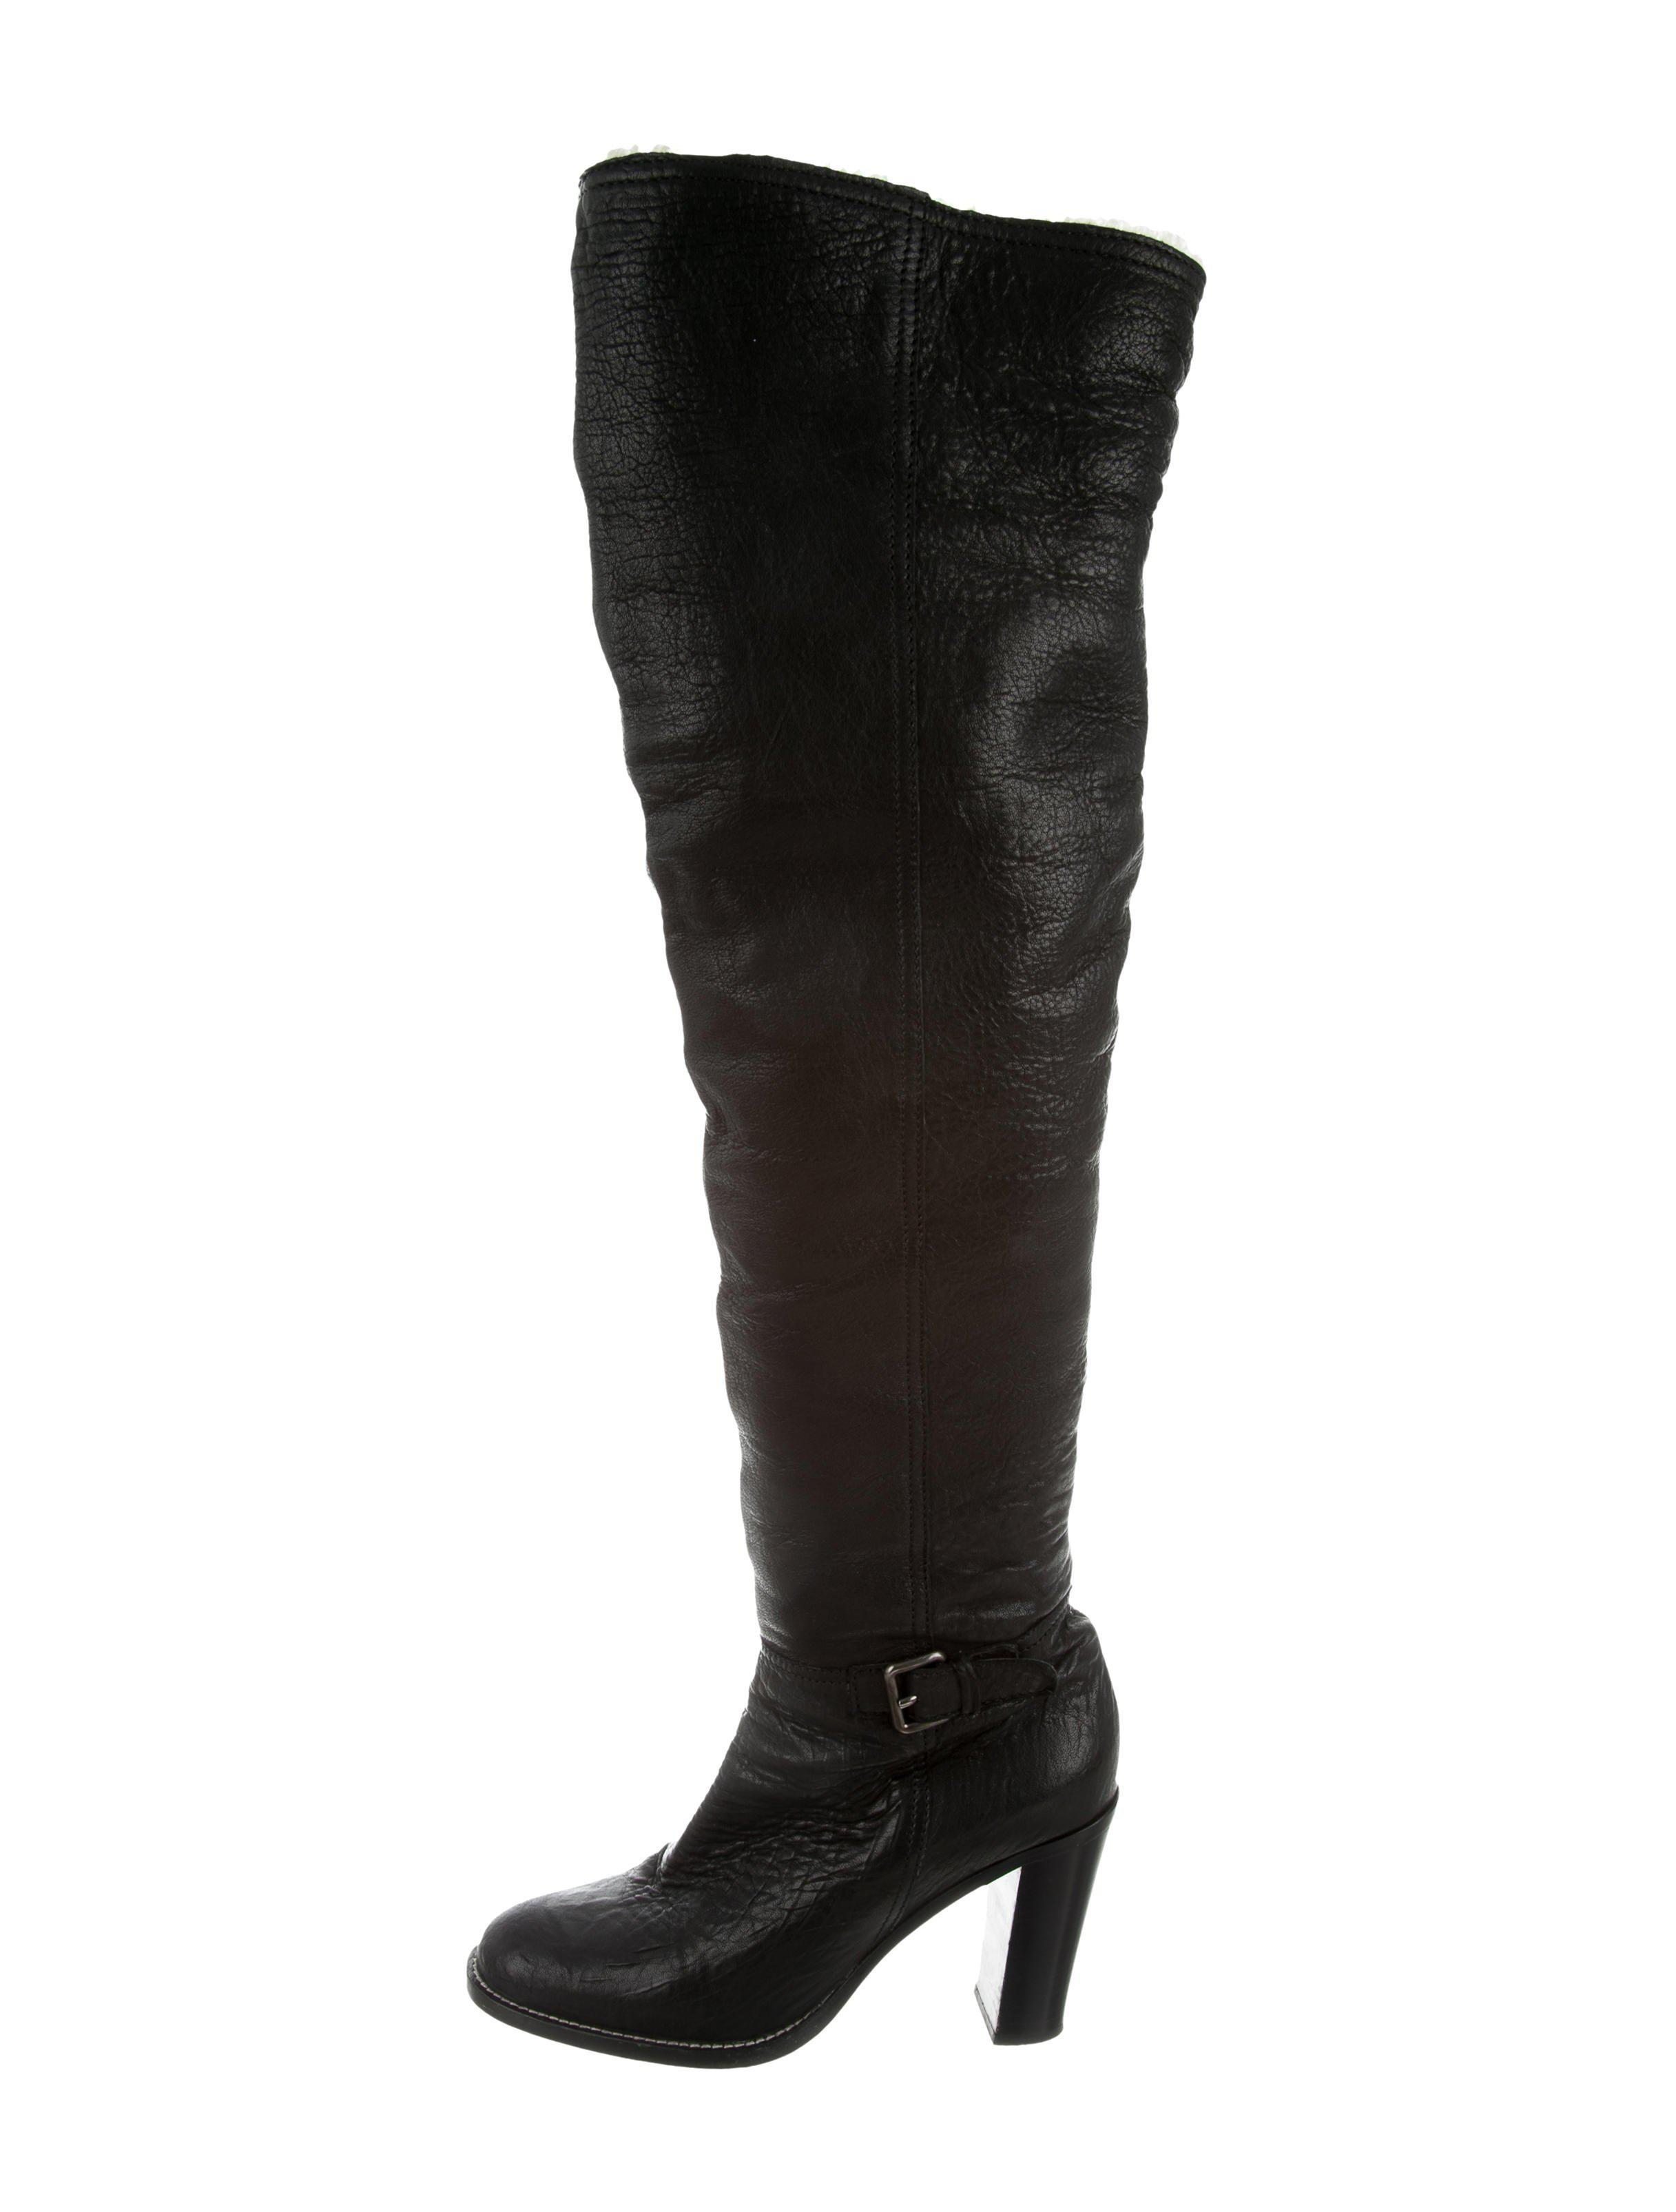 Knee-high leather boots Miu Miu Good Selling Sale Online Cheap Huge Surprise Clearance Manchester Great Sale XuneAt9f